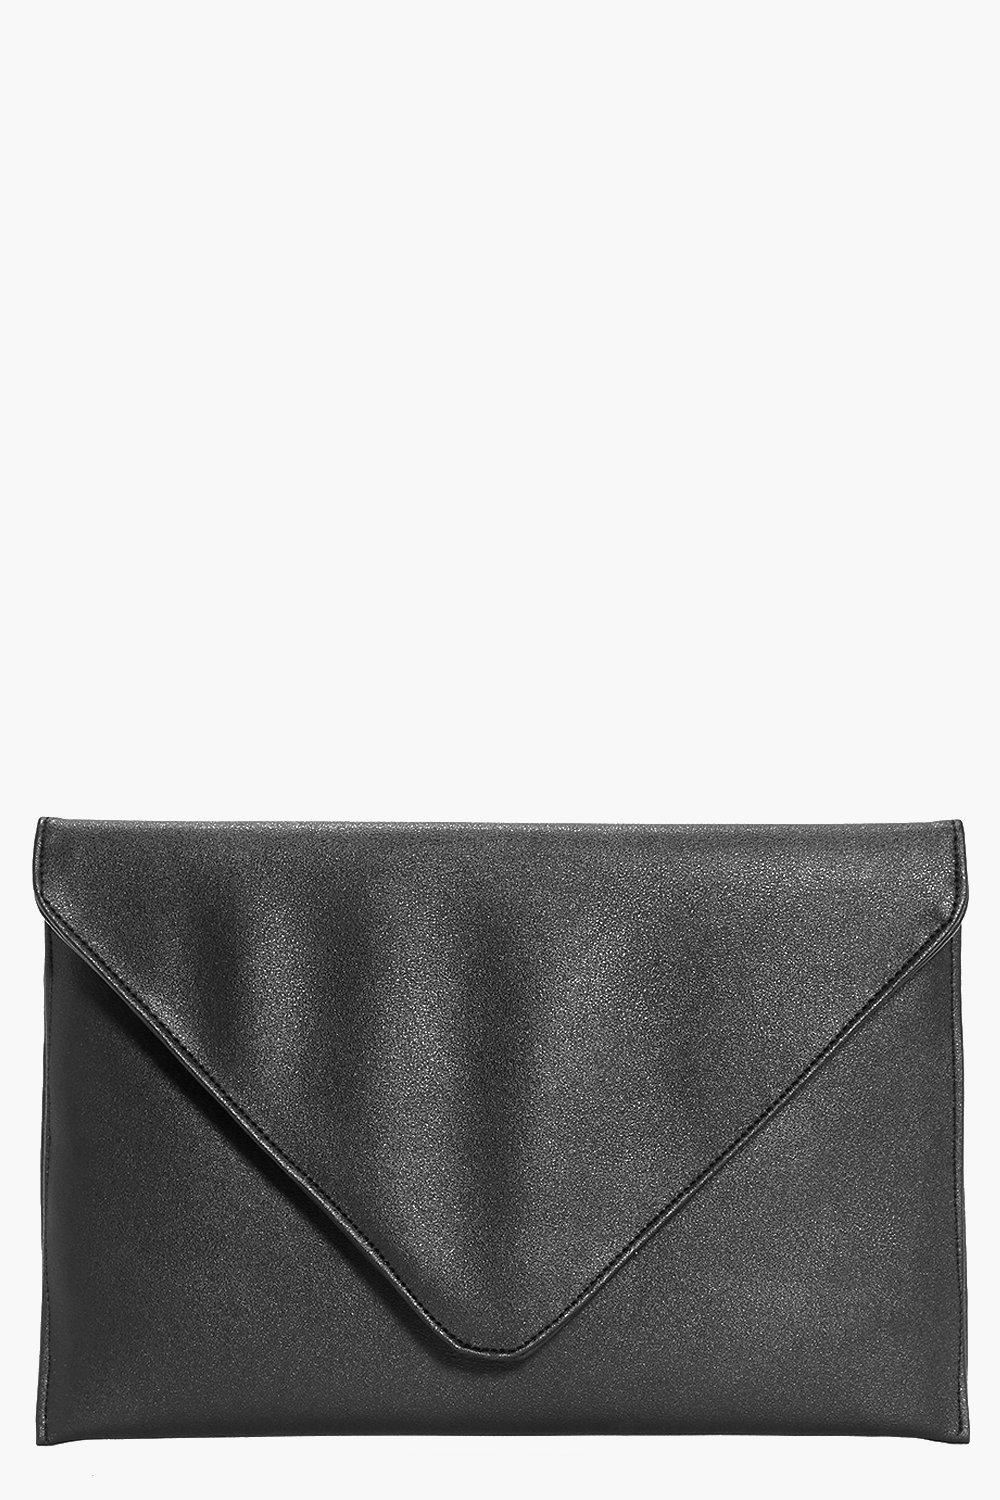 Fold Over Envelope Clutch Bag black